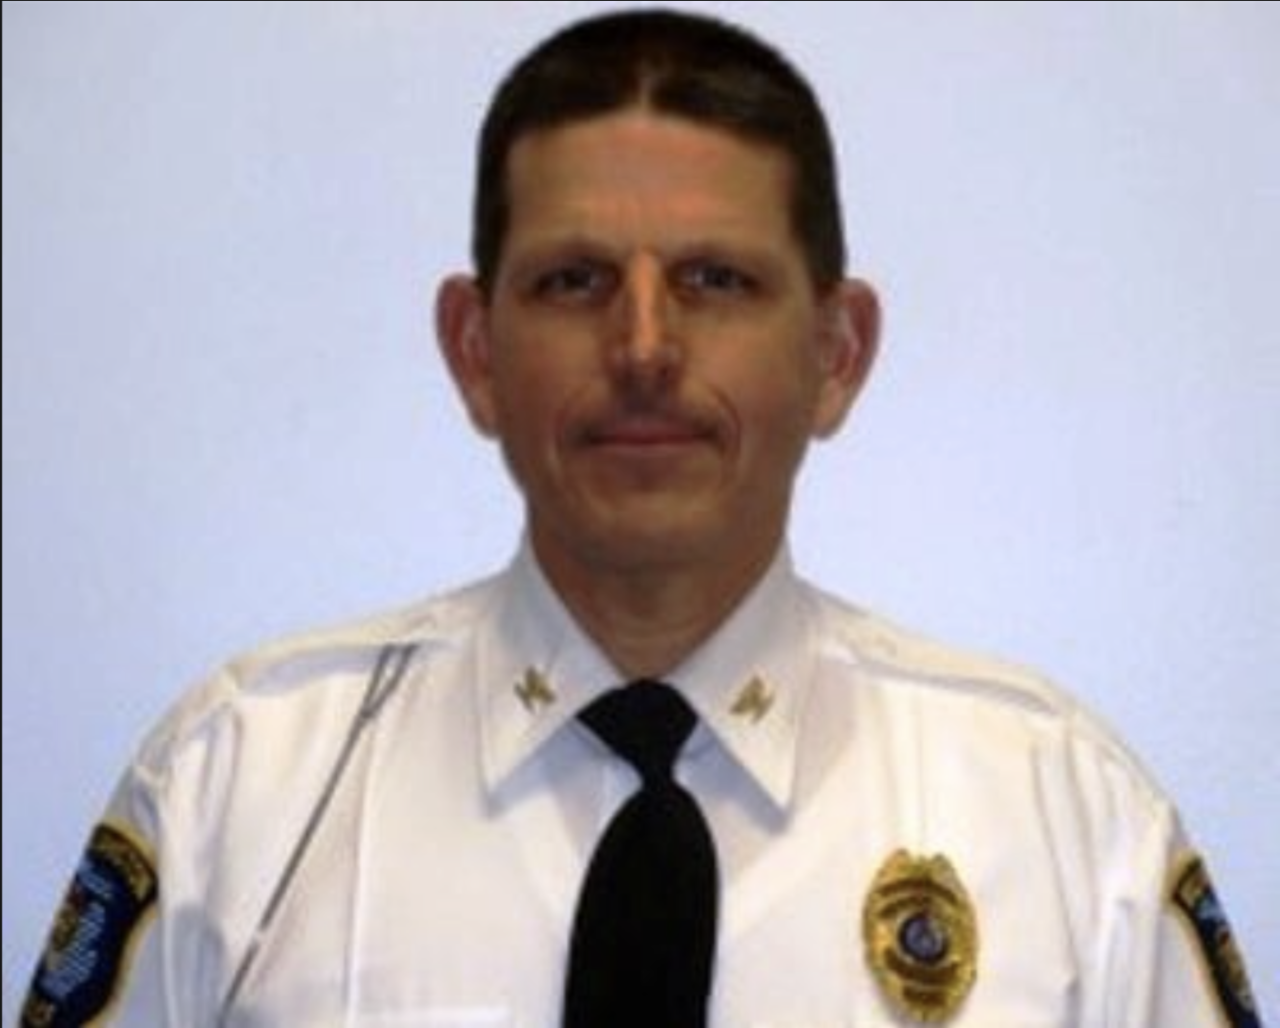 Former Williamston Police Chief Bob Young